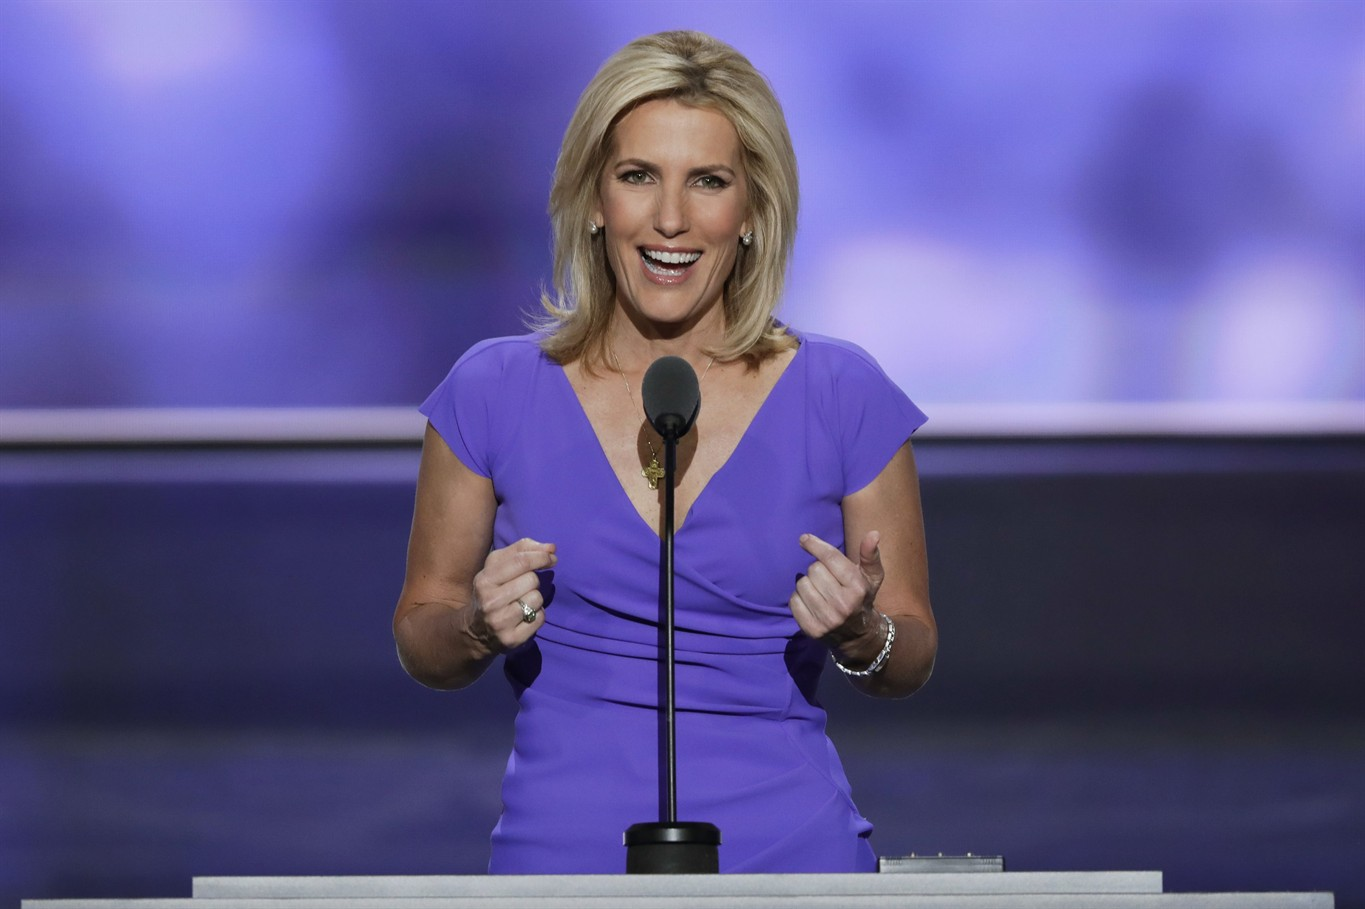 Fox News announces Laura Ingraham show to start next month